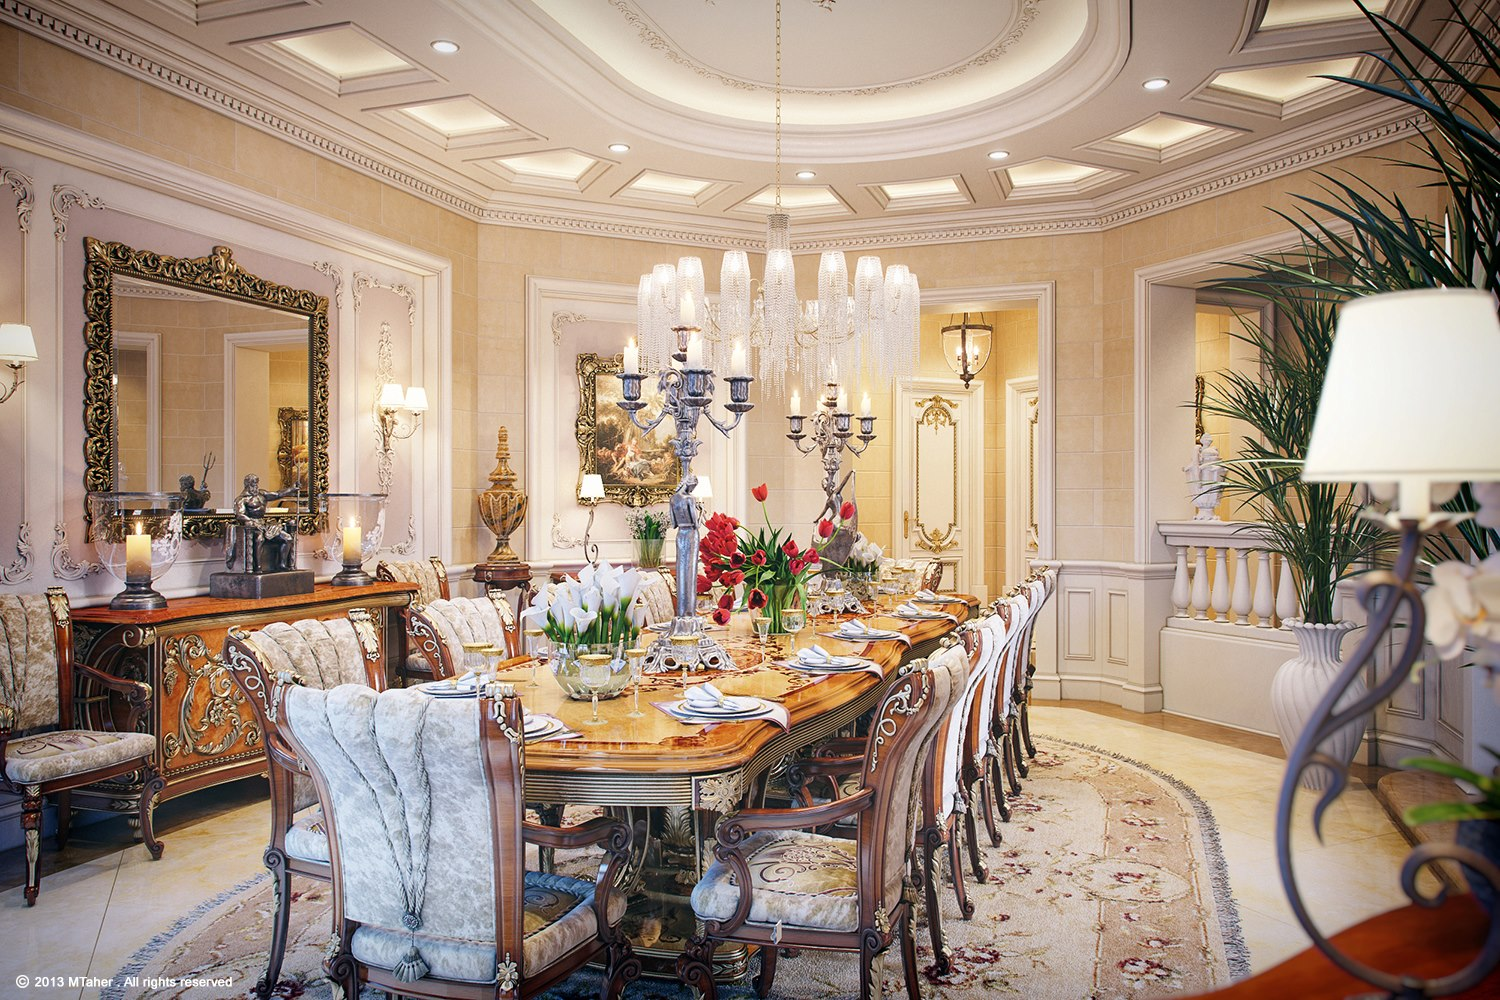 Luxury villa dining room 3 interior design ideas for Luxury dining room design